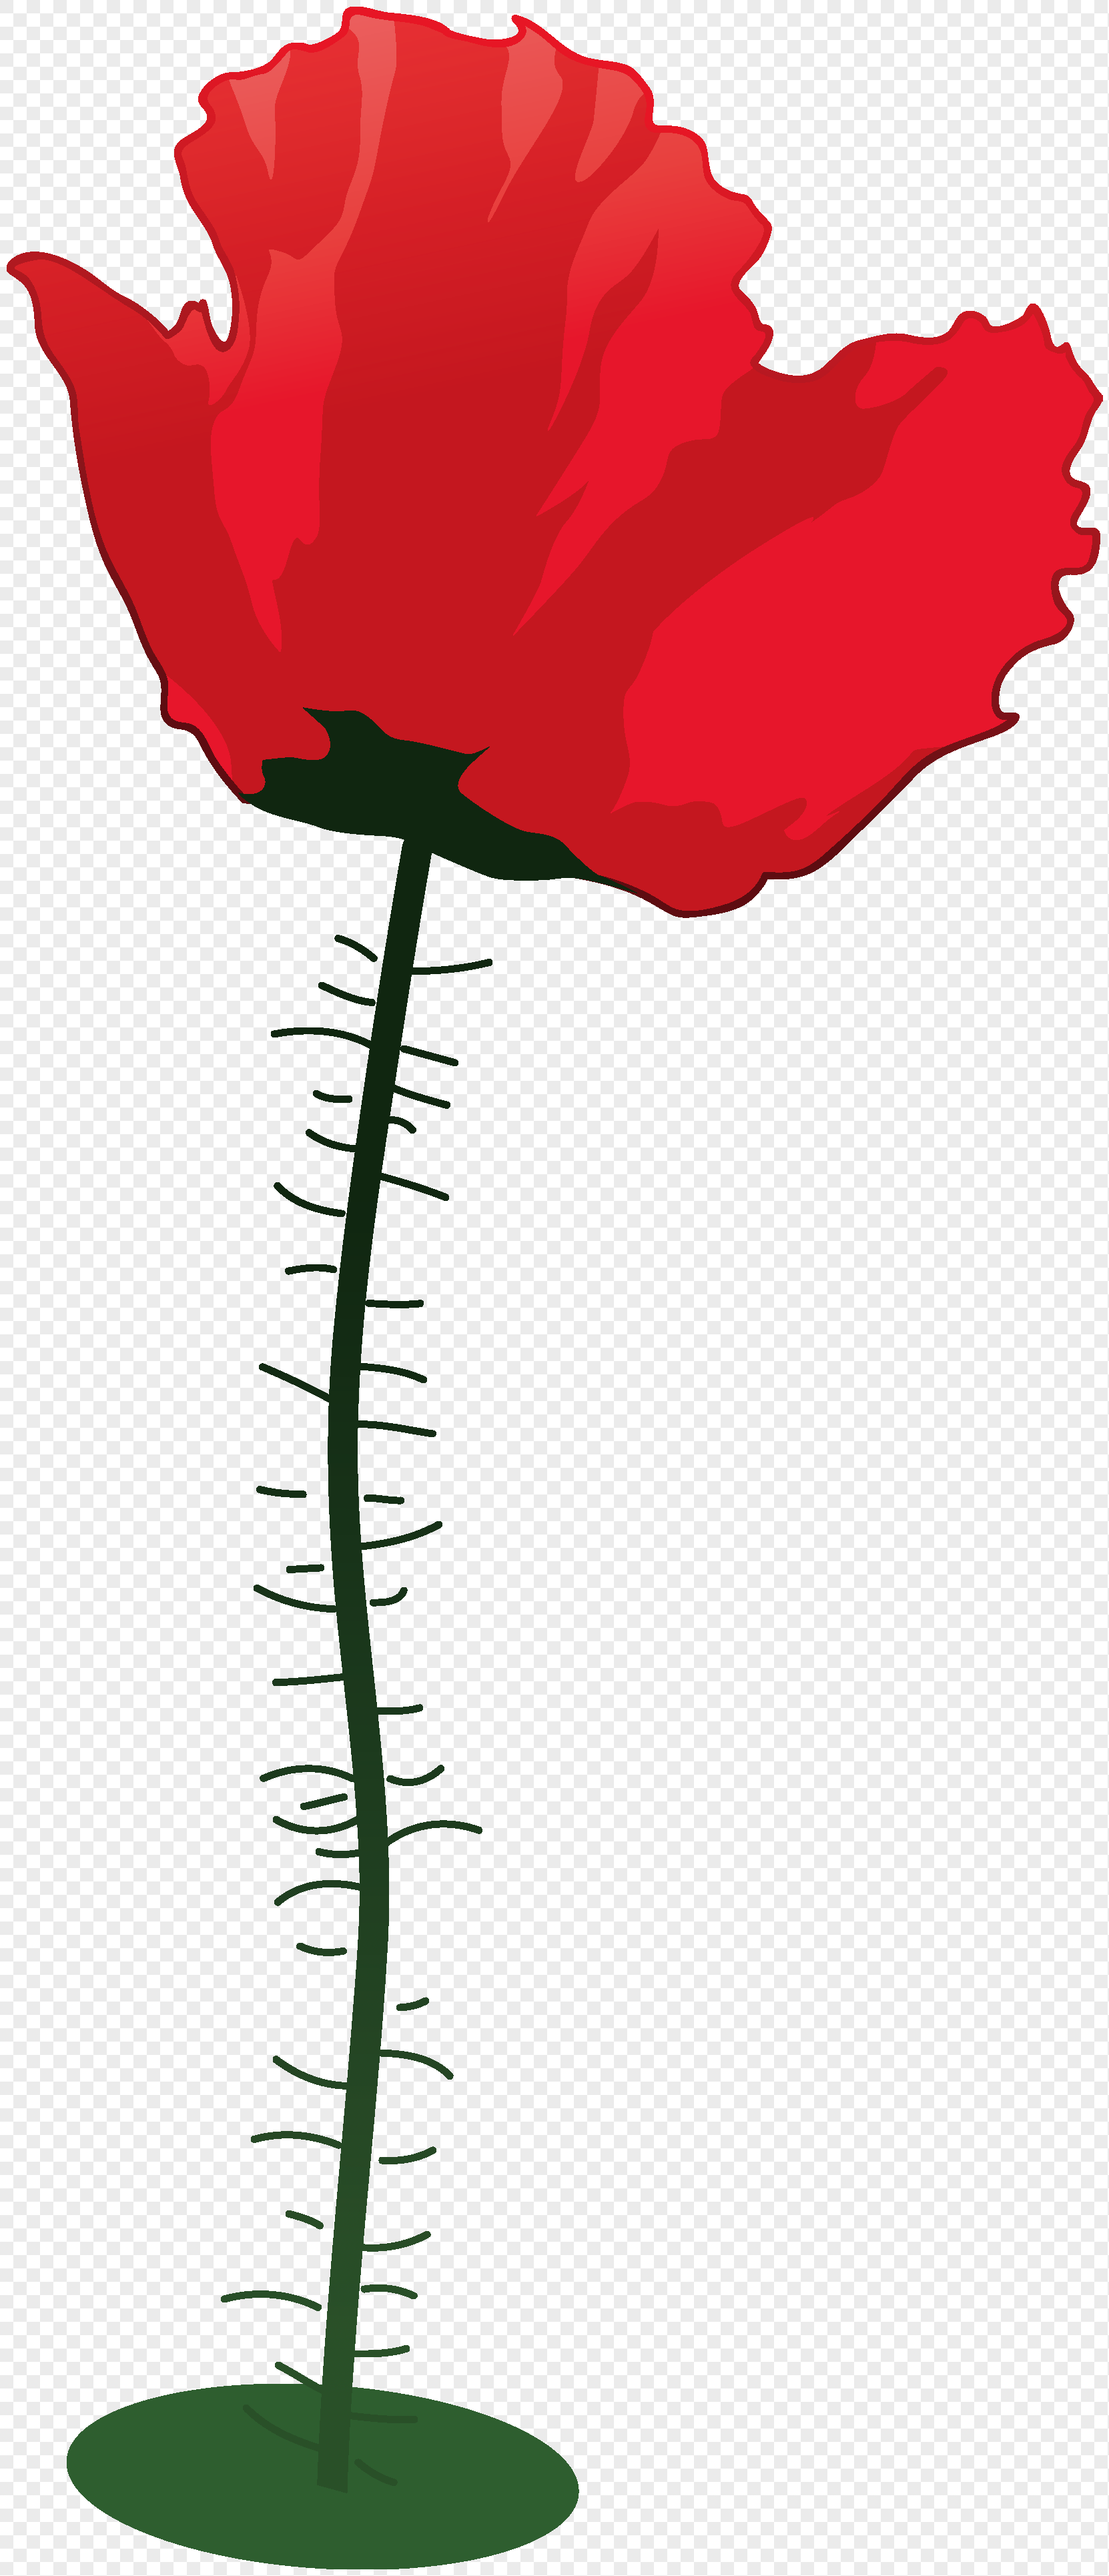 Cartoon Hand Painted Red Flowers Illustration Png Imagepicture Free